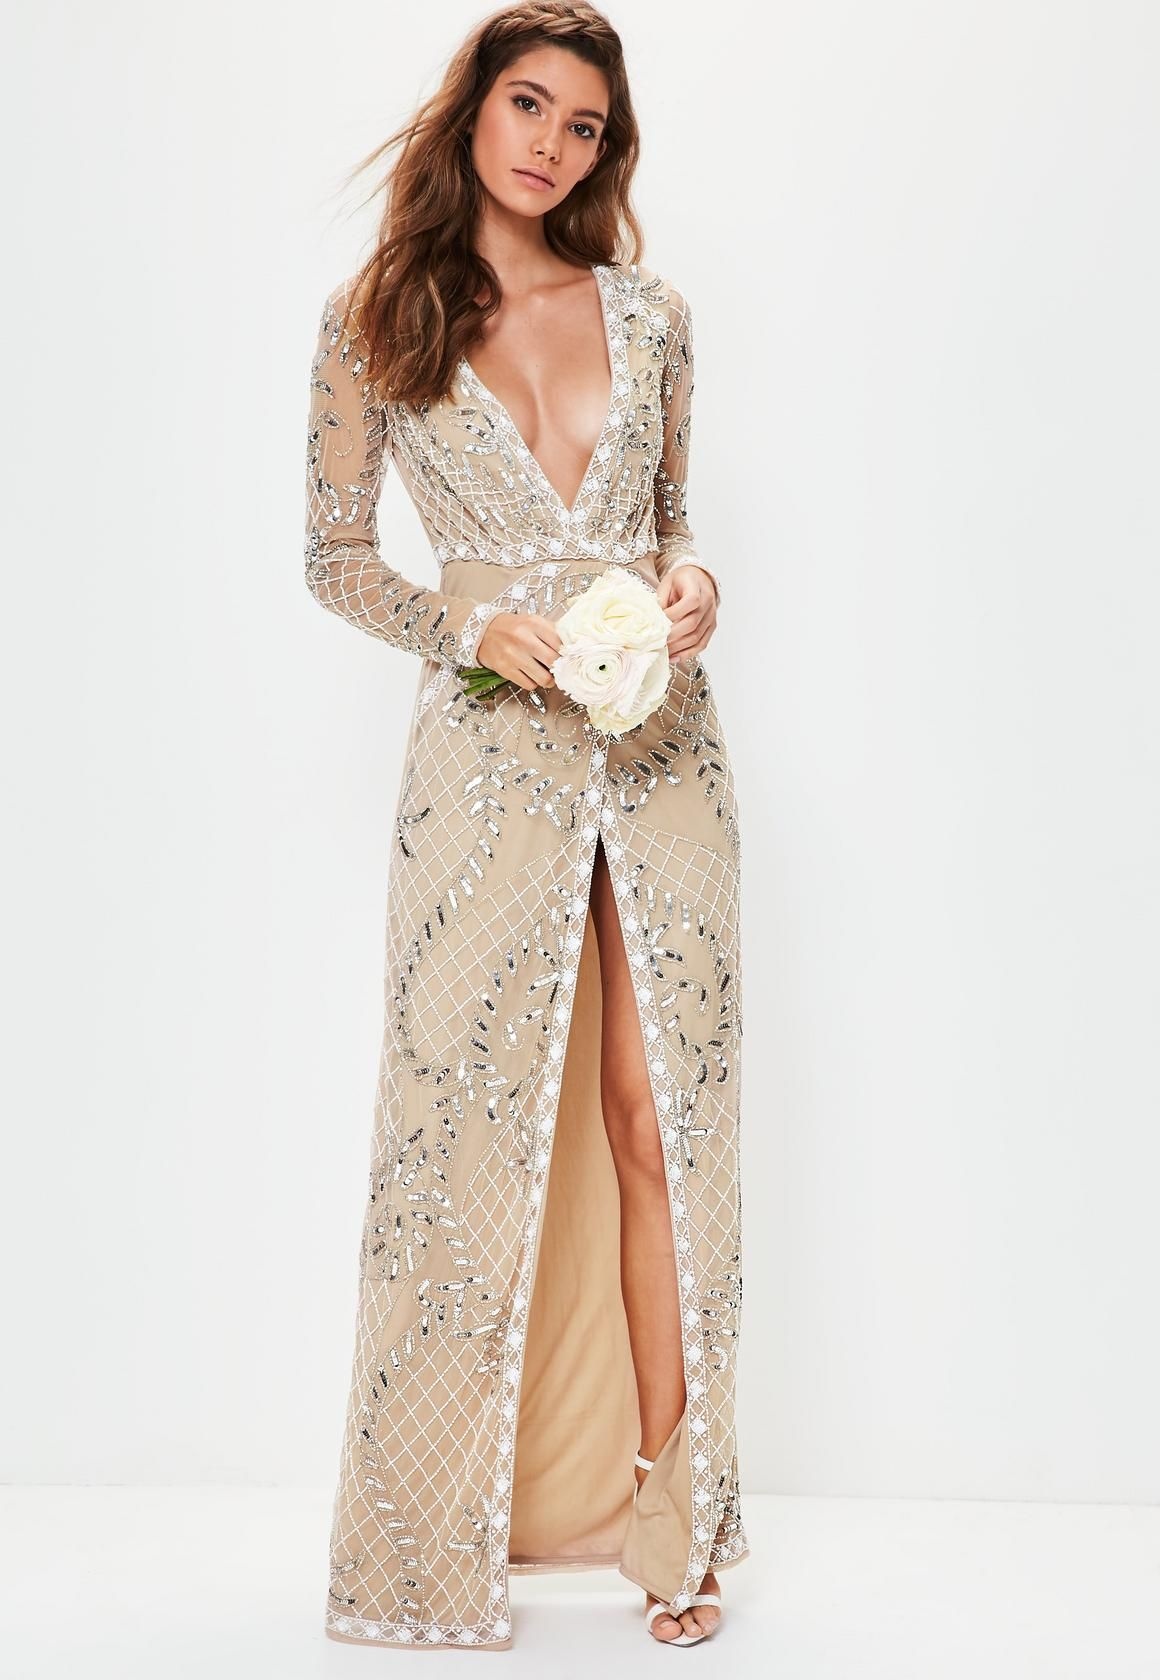 820cdbdc83 Missguided - Bridal Nude Long Sleeve Plunge Embellished Maxi Dress ...